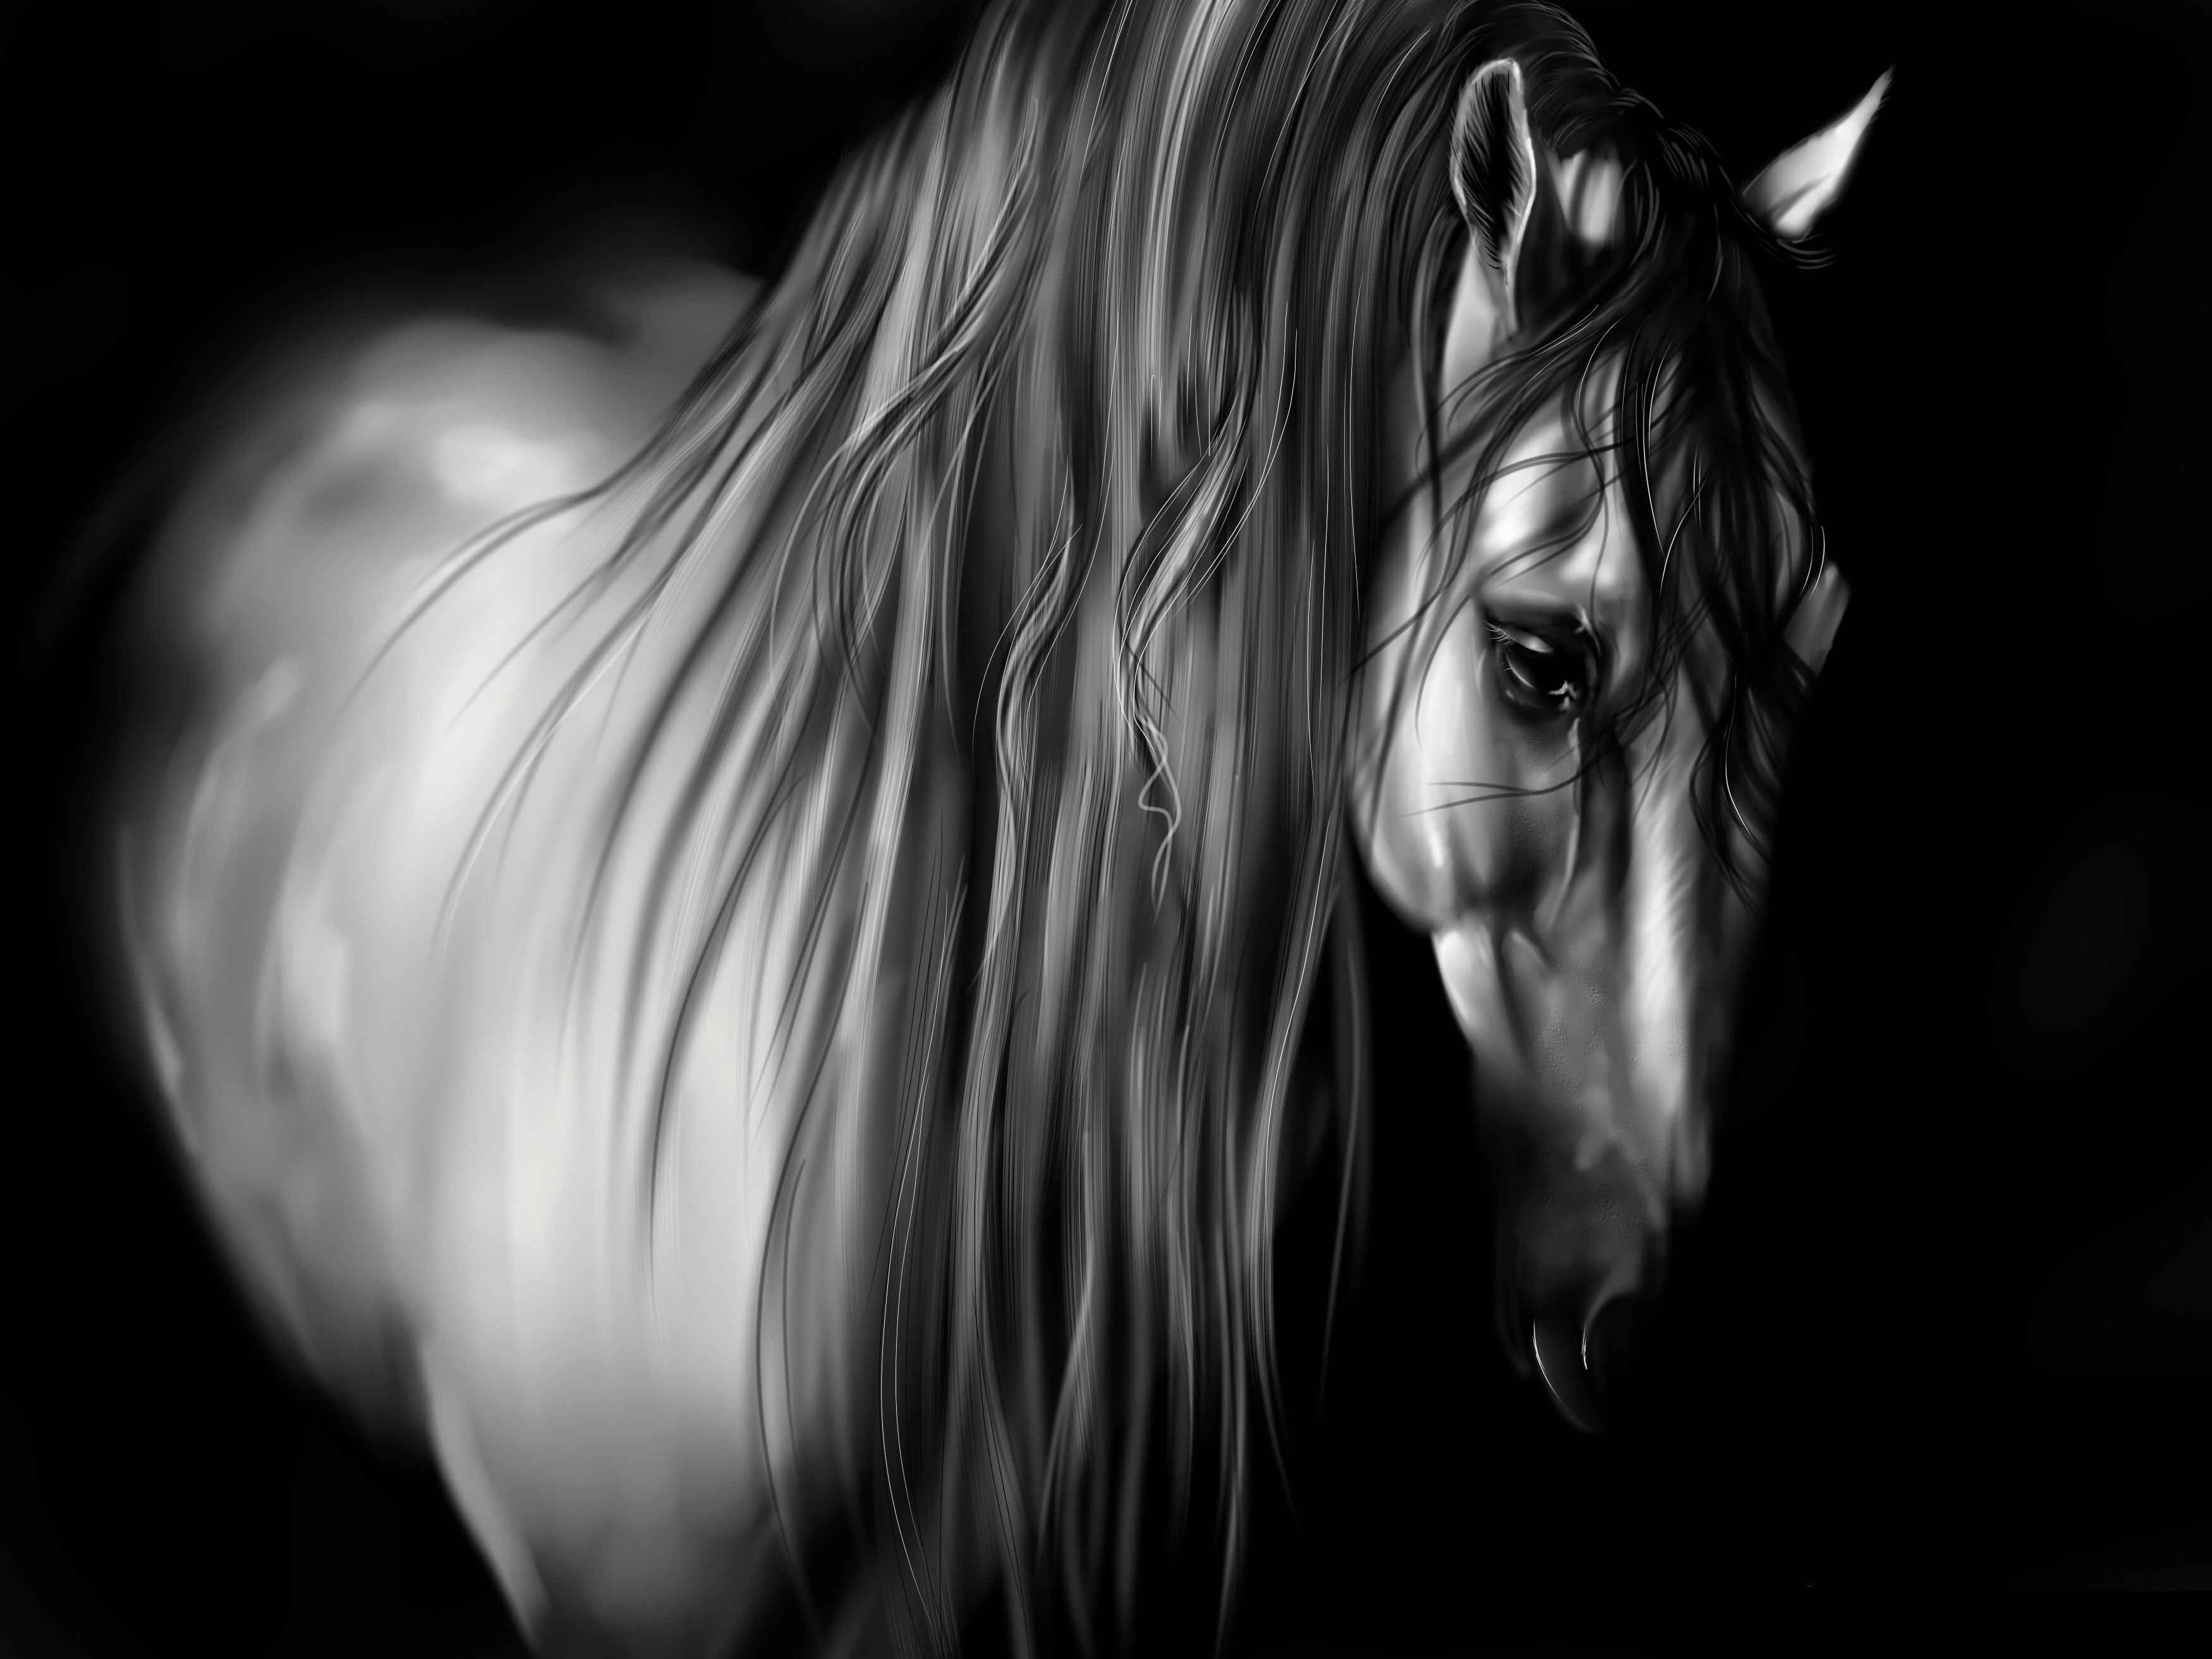 Animal horse mane black and white black background wallpapers 3500x2625